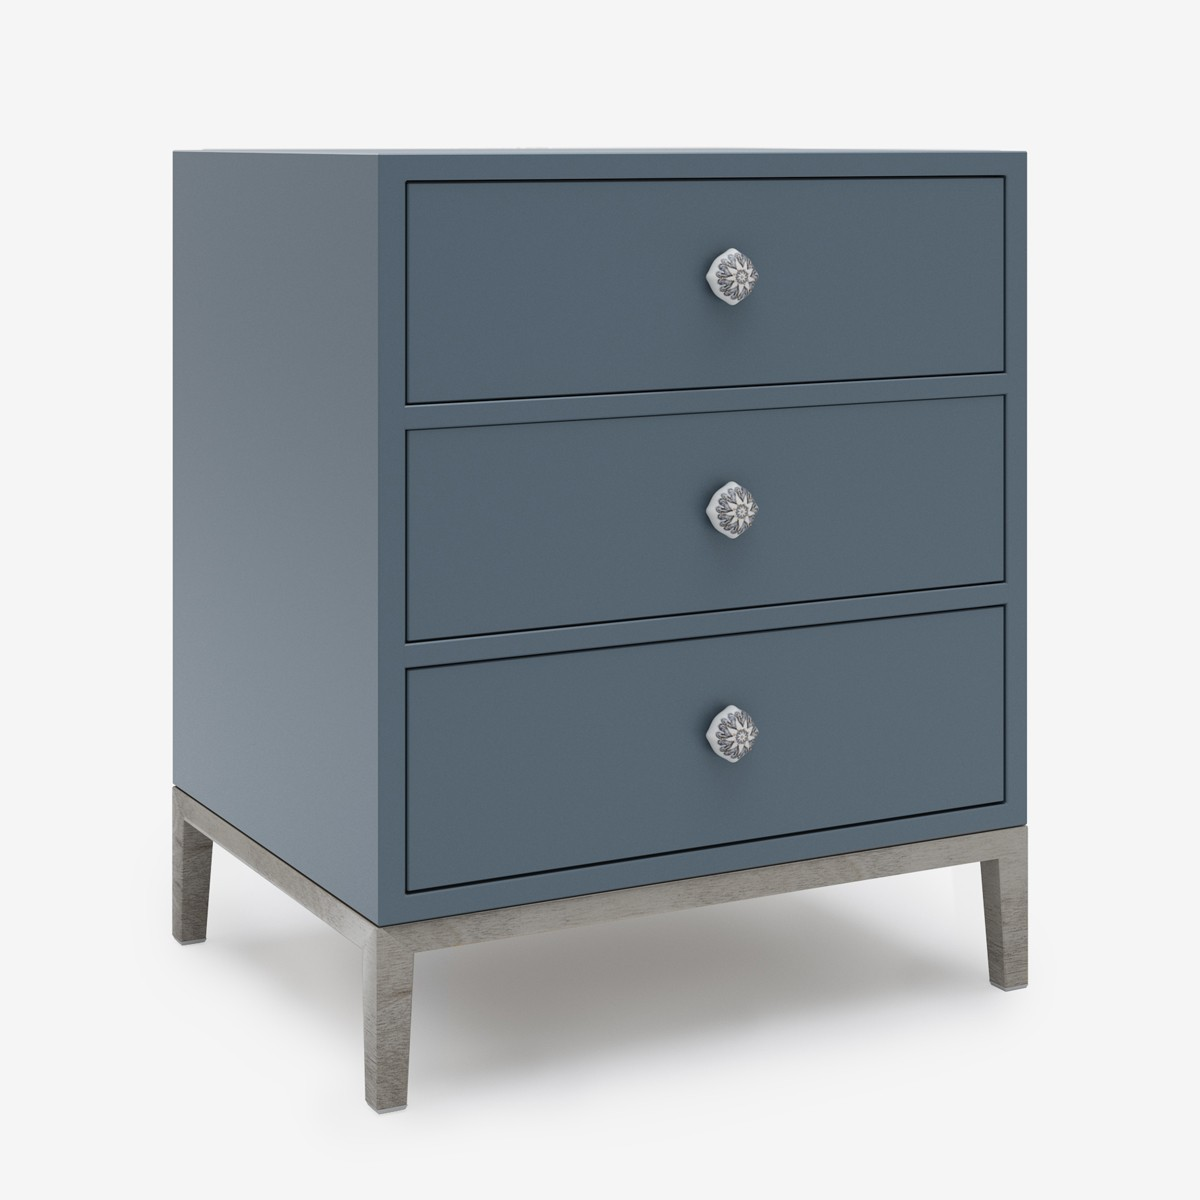 Drawer Store Bedside Table in Blue Grey Lacquer - W45 x D40 x H60 cm